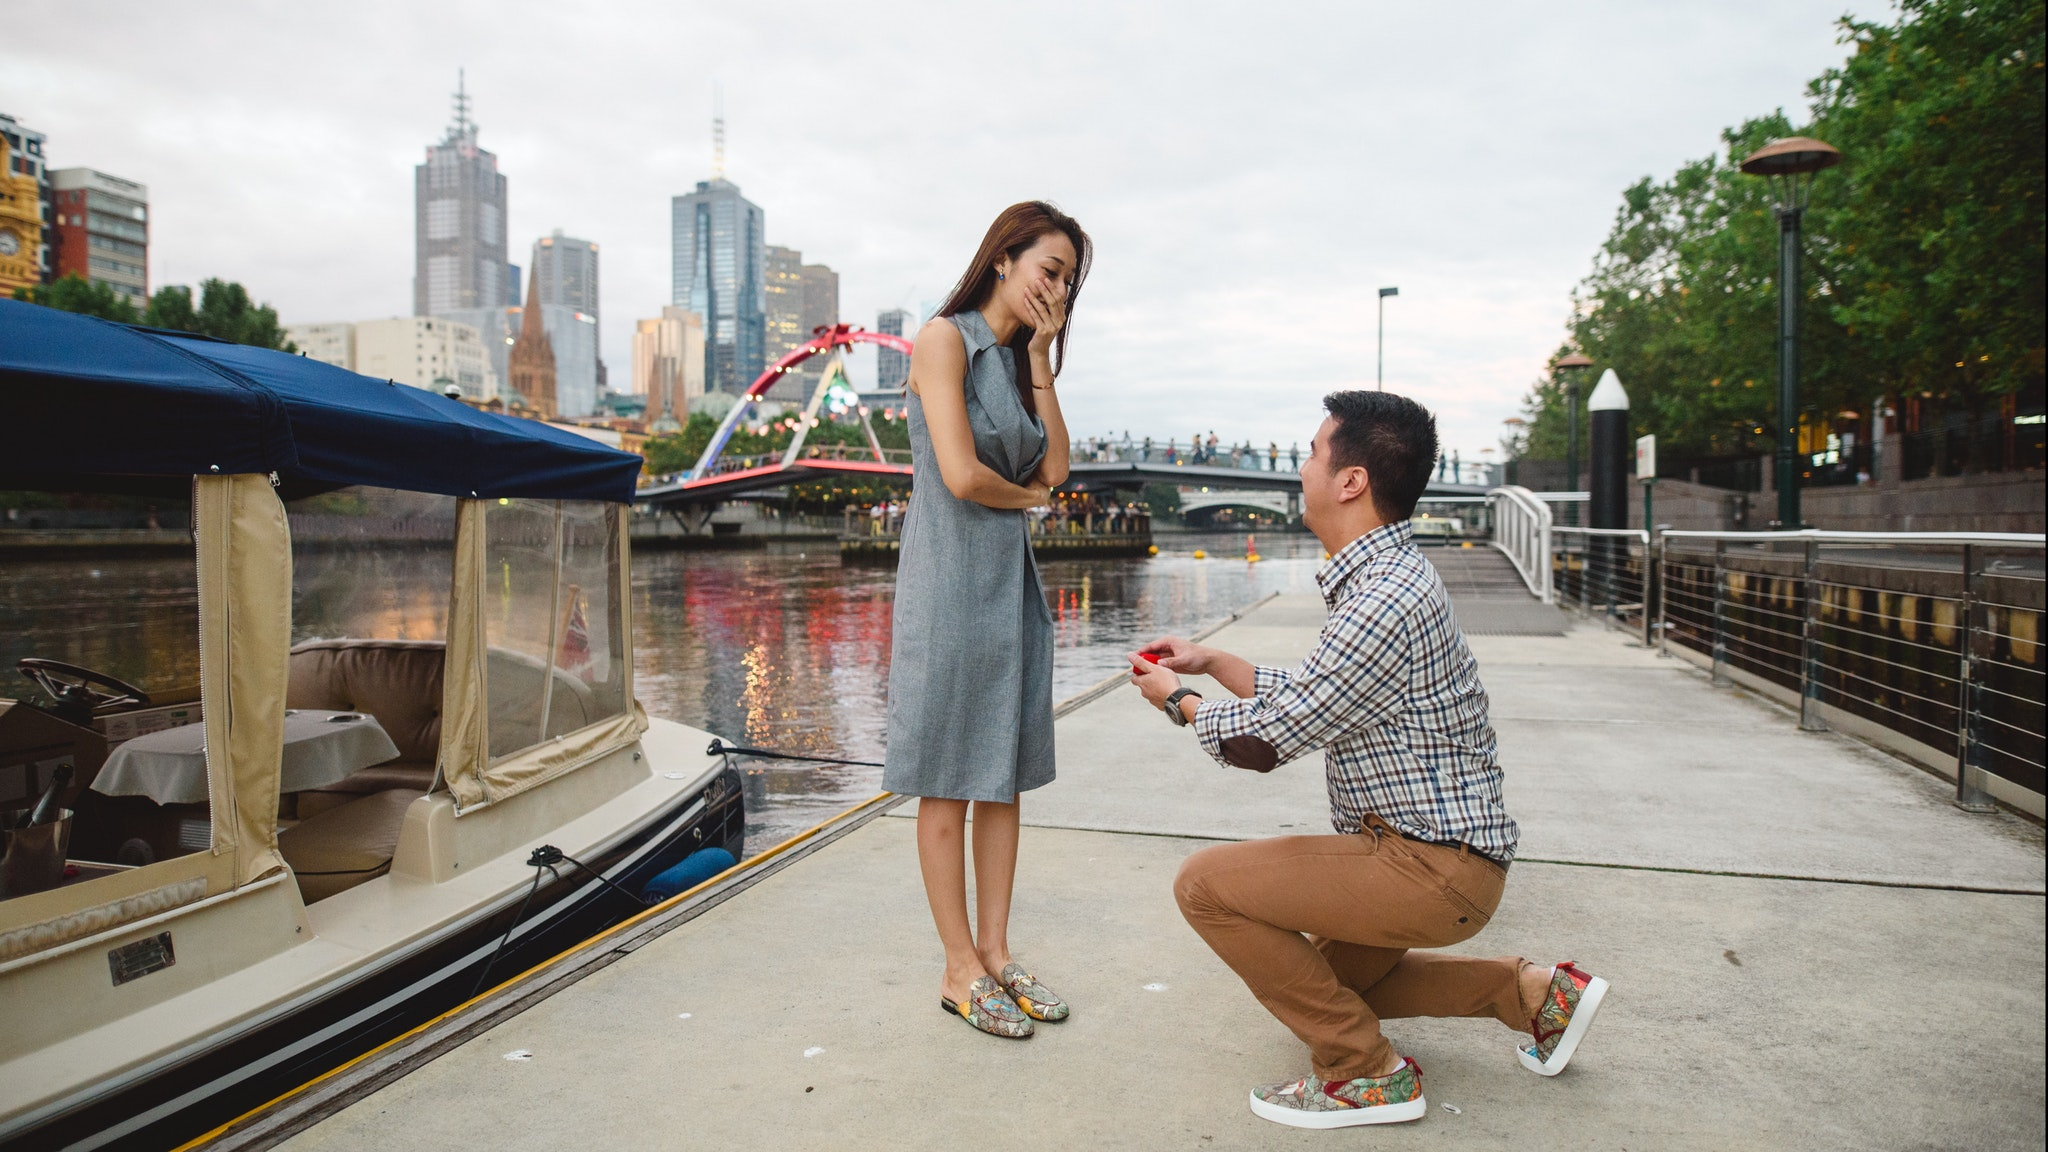 Romantic Proposal ideas Melbourne - enjoy a memorable engeagement to your loved on